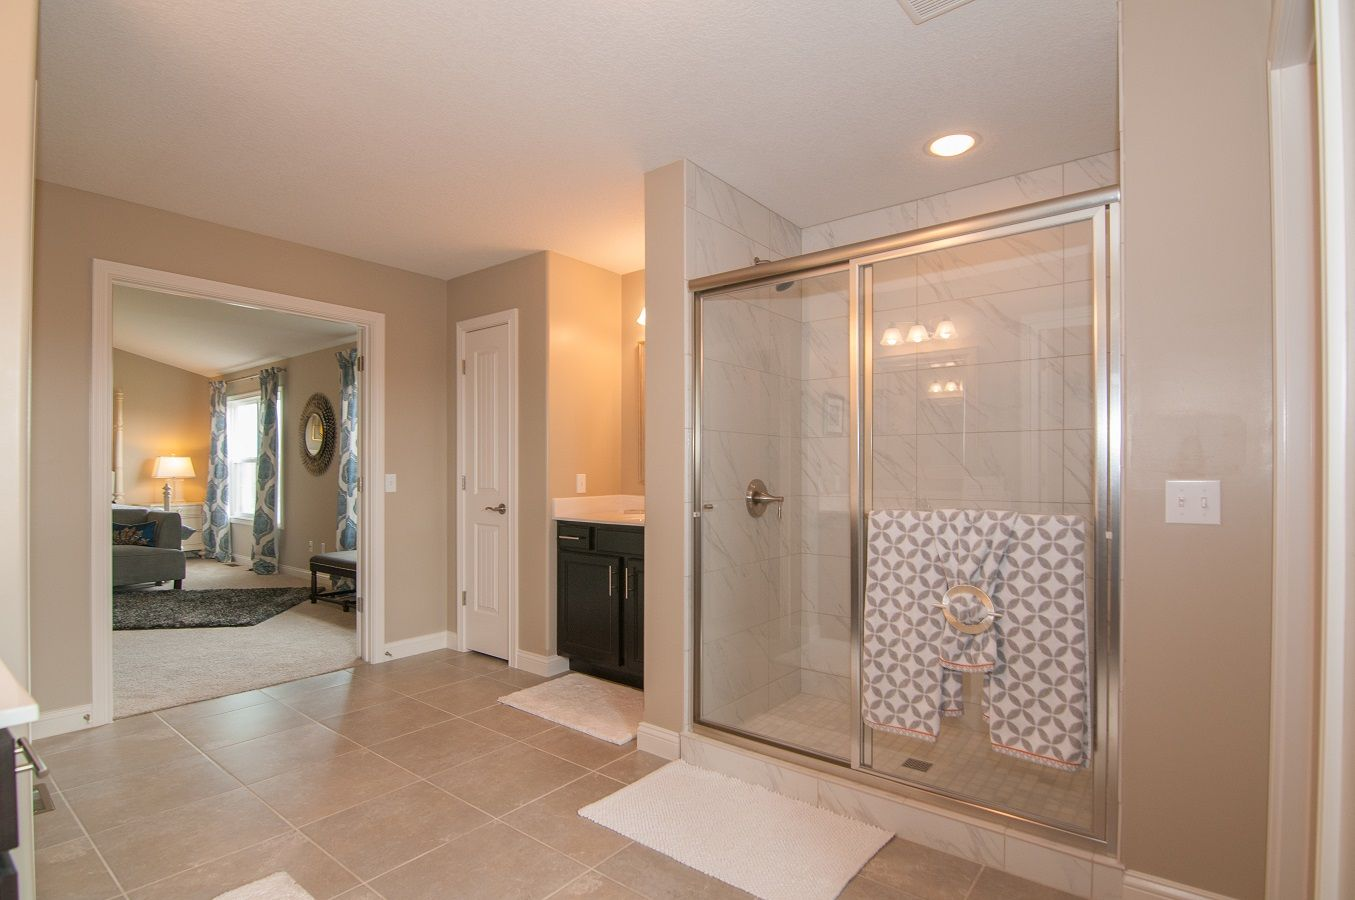 Bathroom featured in the Savannah By D.R. Horton in Fort Wayne, IN